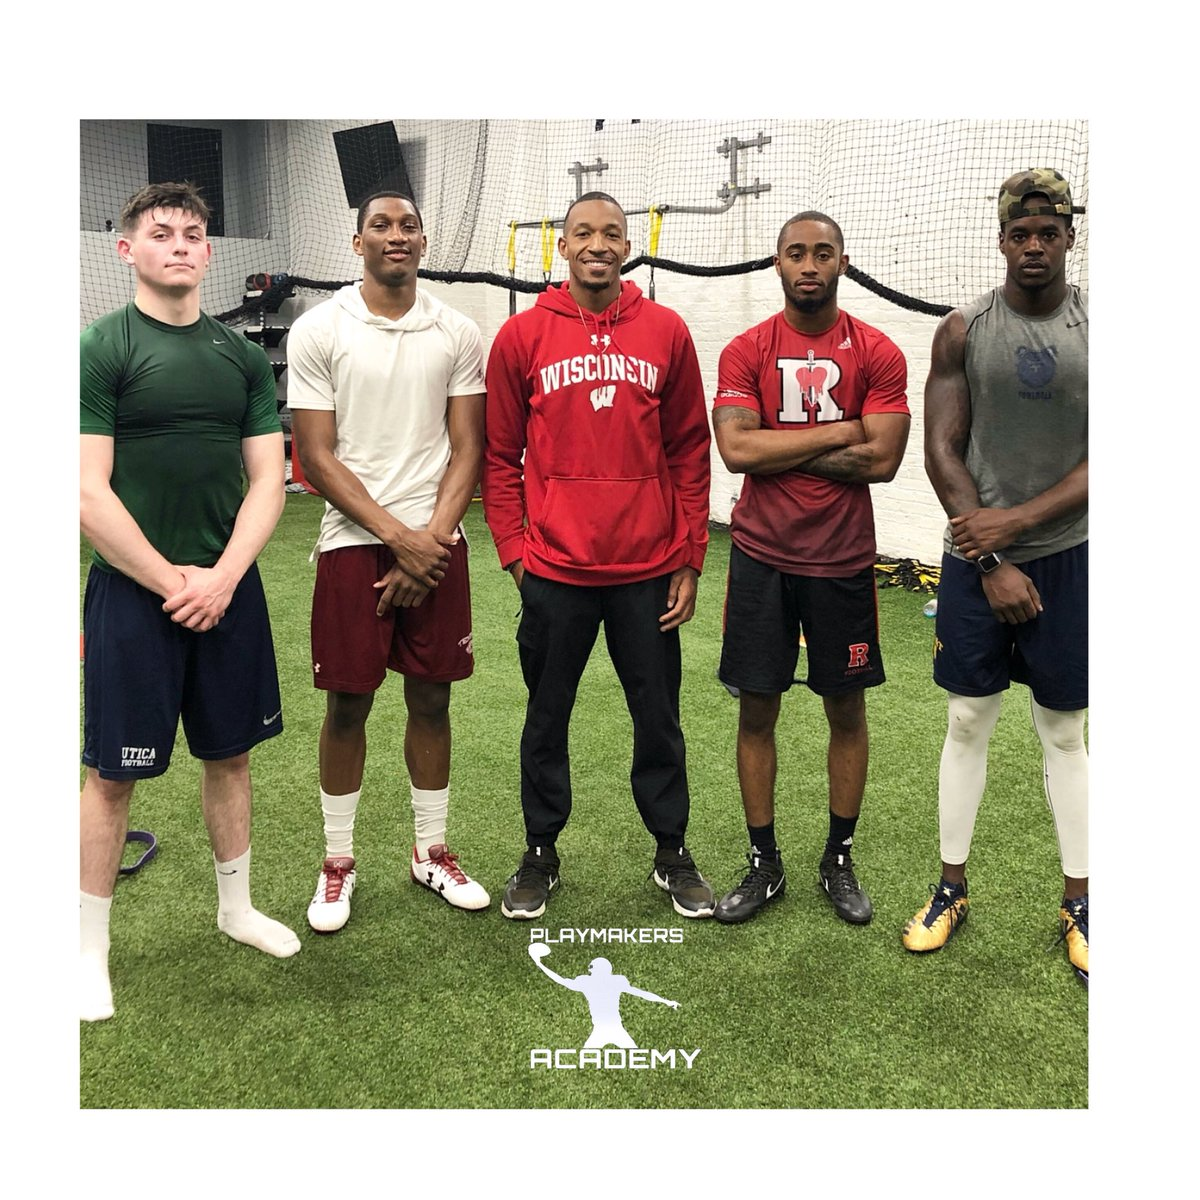 Coming to a collegiate end zone near you.  ⠀⠀⠀⠀⠀⠀⠀⠀⠀ #PLAYMAKERSACADEMY #WRU #PLAYMAKER #athlete #nevergiveup #workout #practice #lifestyle #showtime #time #passion #style #unbreakable #doyourbest #ambition #undefeated #rfootball #TempleTUFF #NCATAggies #FearTheMoose<br>http://pic.twitter.com/r3WU5J47jG